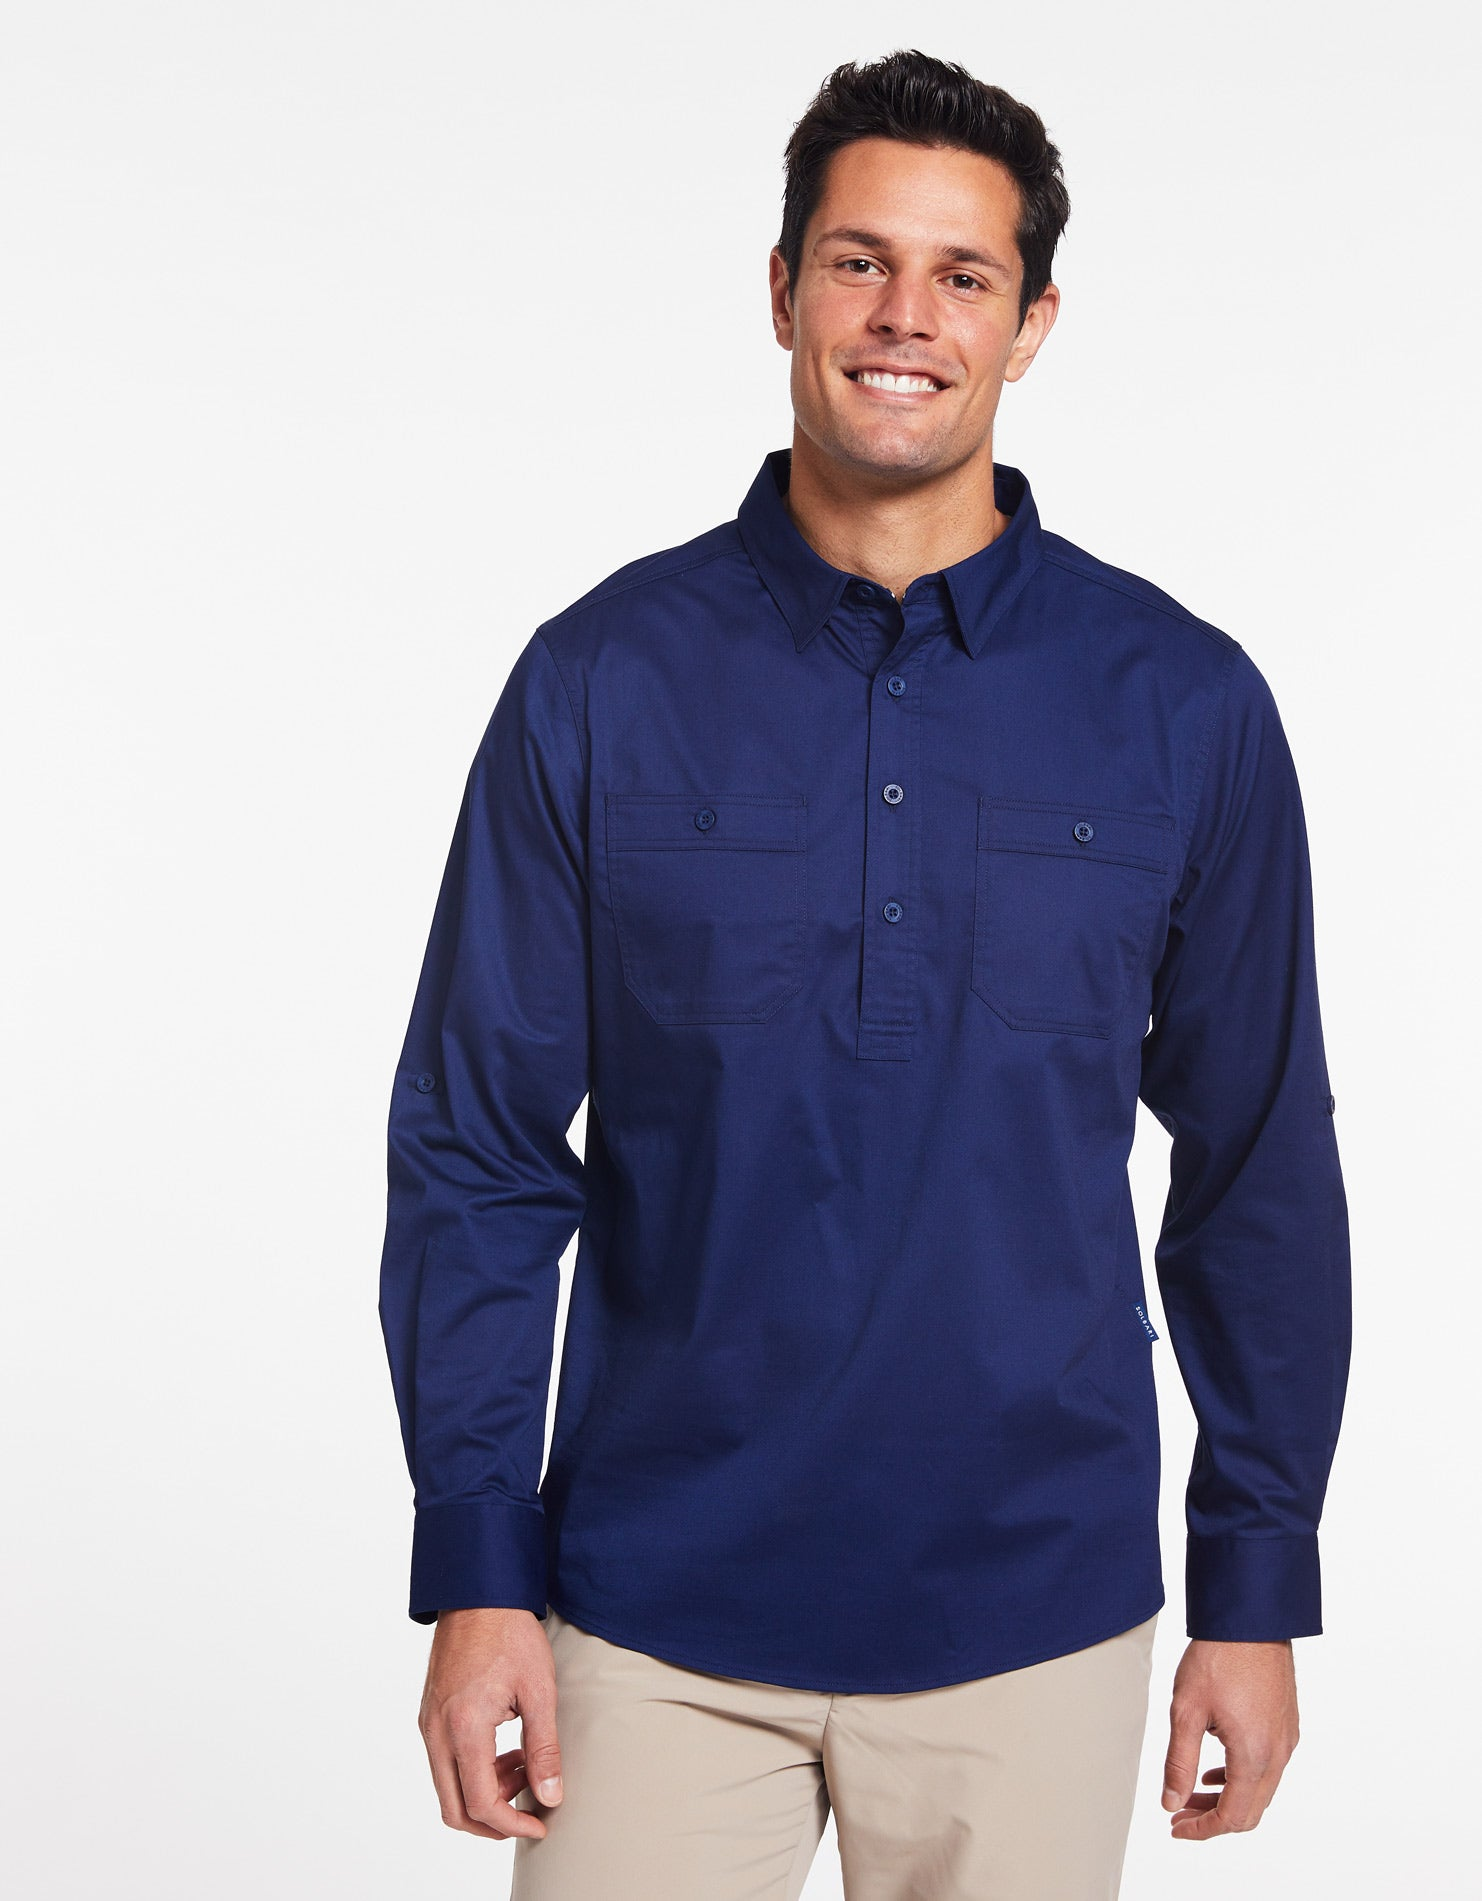 Solbari Sun Protection UPF 50+ Outback Half Placket Shirt in Navy Technicool Collection